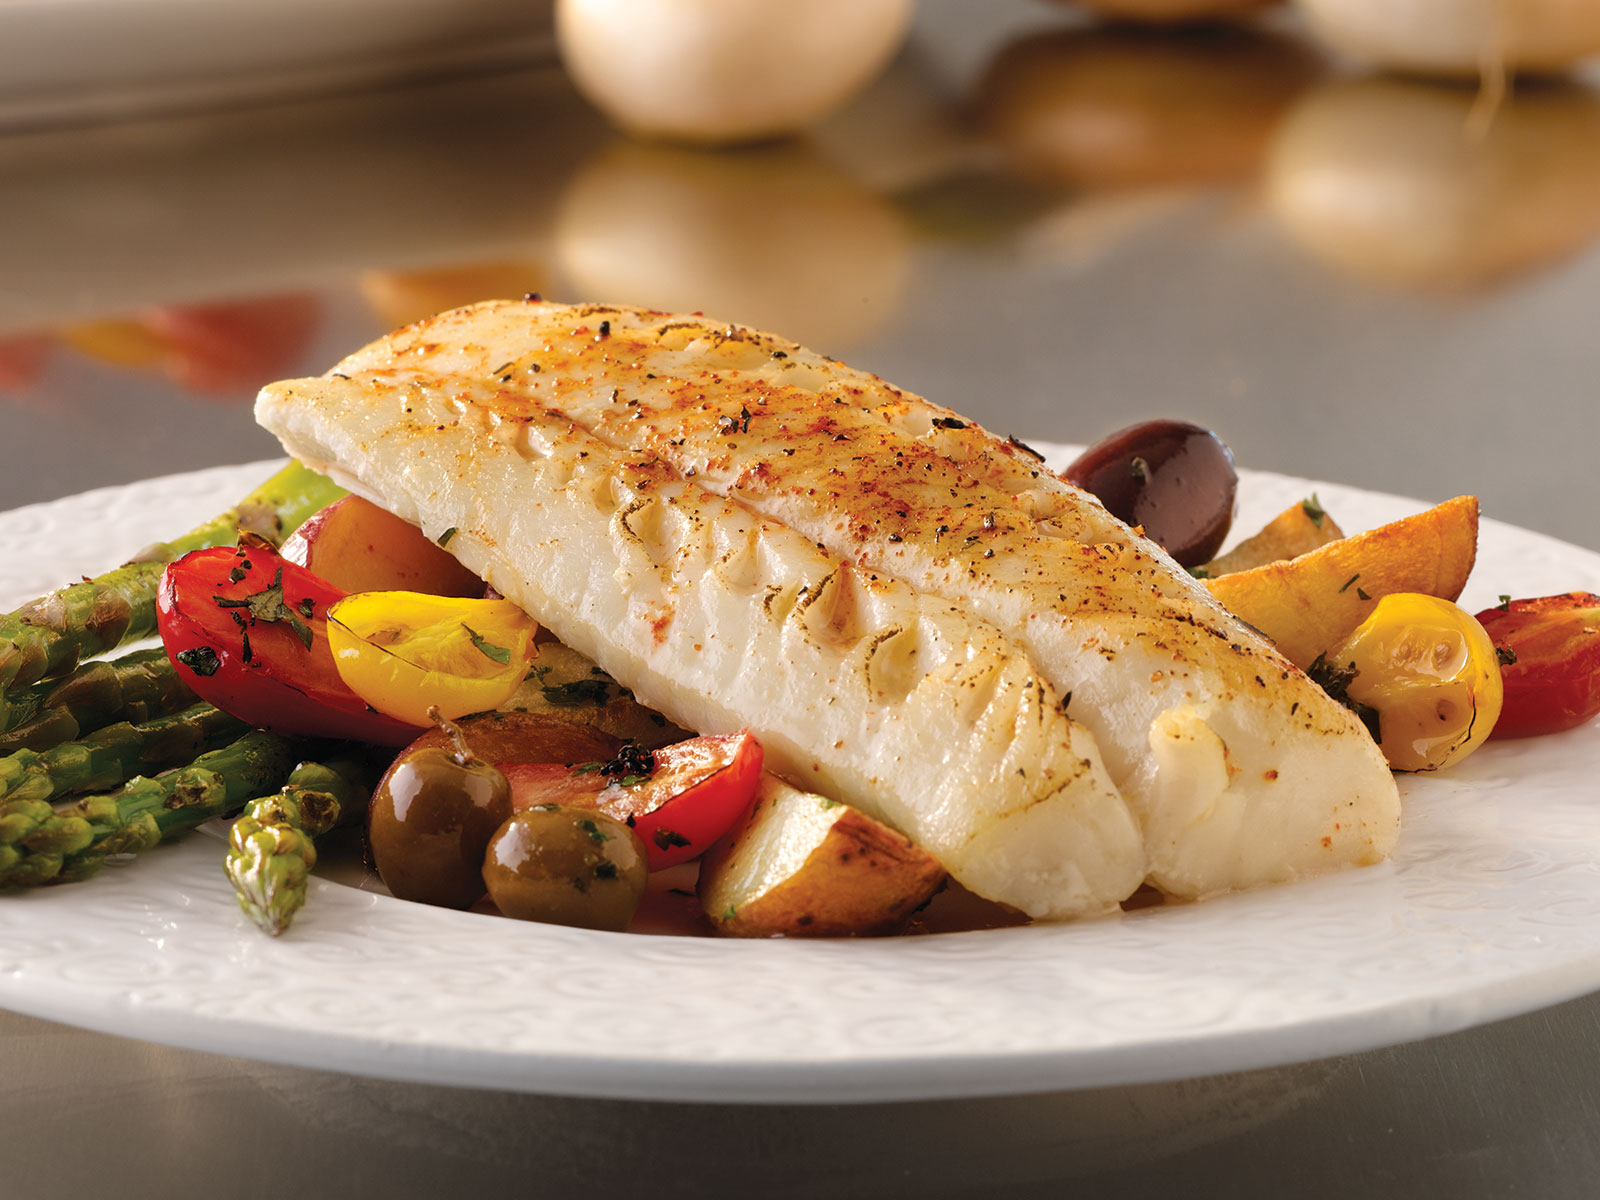 Cod Loin Portions 5 oz IQF, Skinless, Boneless (1/10 lb) 492981